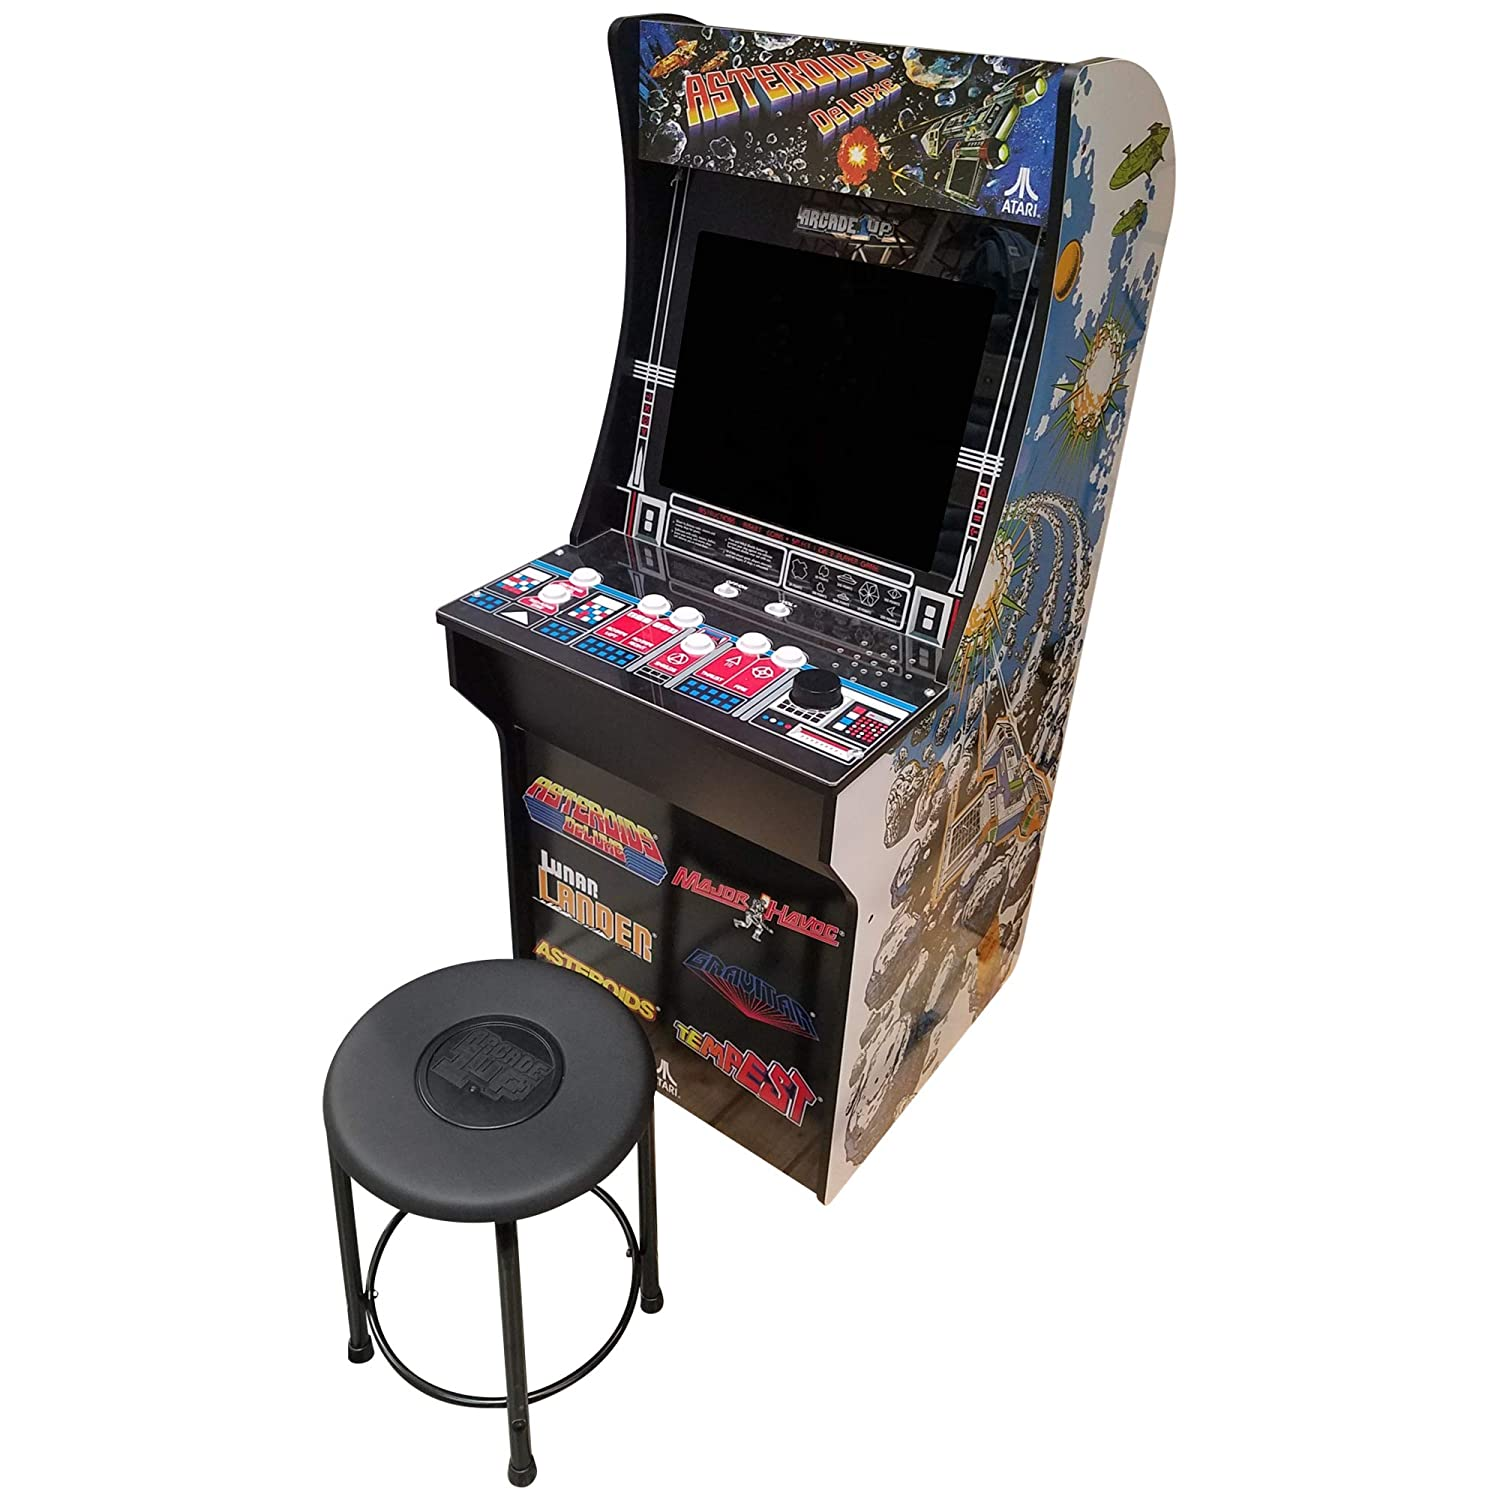 Buy Creative Arcades 6 in 1 Atari Cabinet Arcade 1Up Machine for Home   6  Classic Games Pre-Installed   Plug and Play - Fully Assembled   1 - 2  Player   Stool